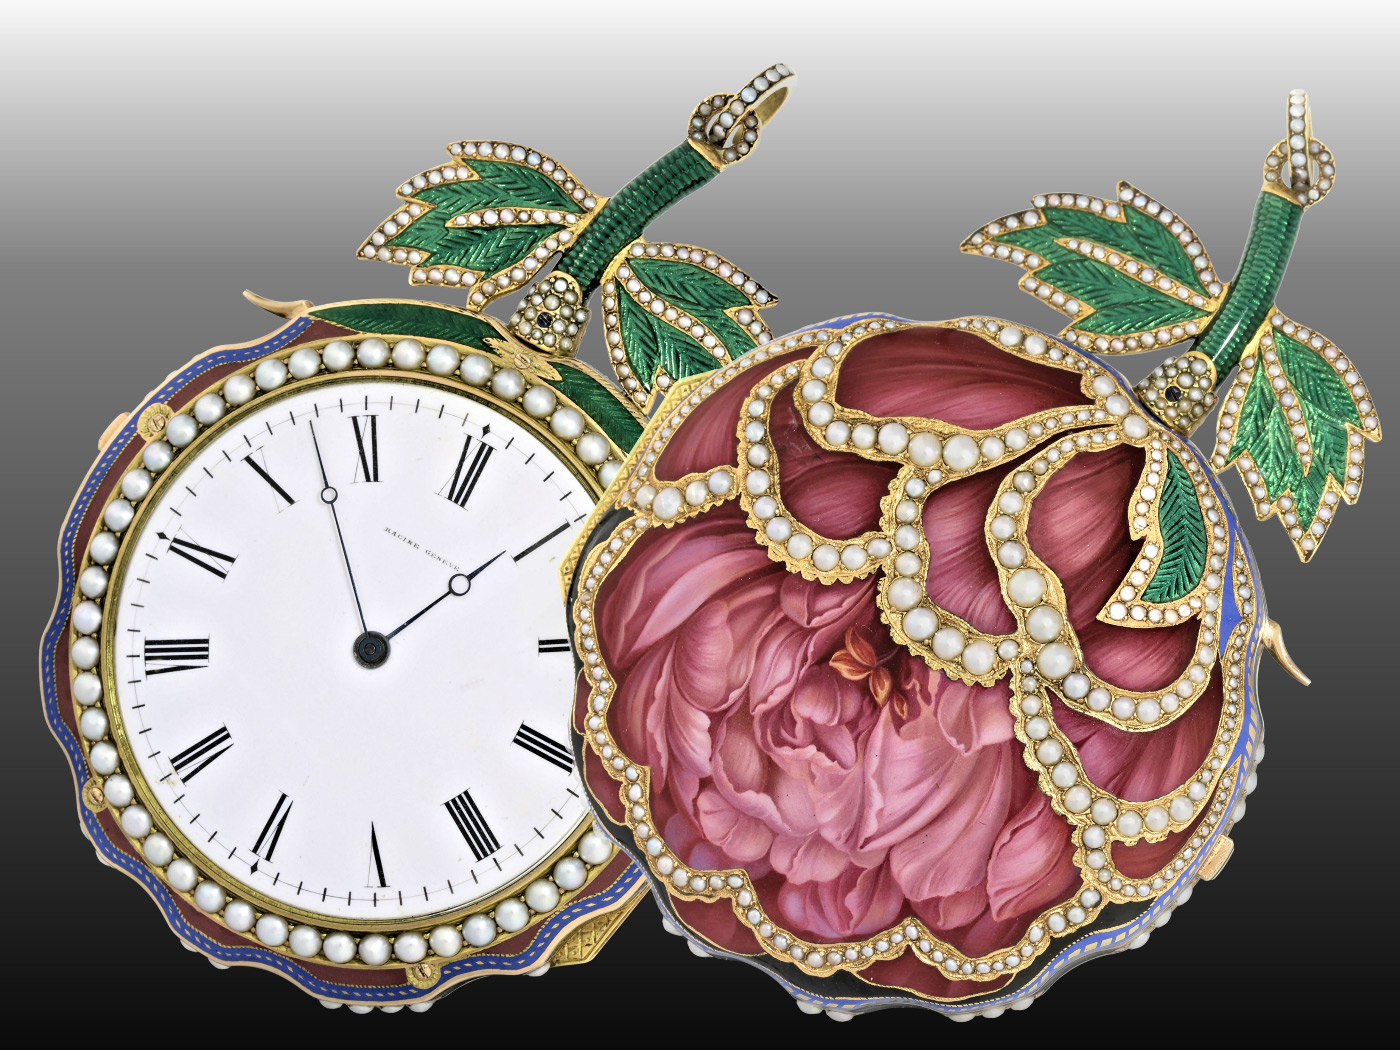 "Pocketwatch : Extremely fine and extremely rare enamel watch ""The Peony"", attributed to Piguet et Meylan, Geneva, probably made for the Chinese Emperor, circa 1820, enamelled Grande Sonnerie movement-"